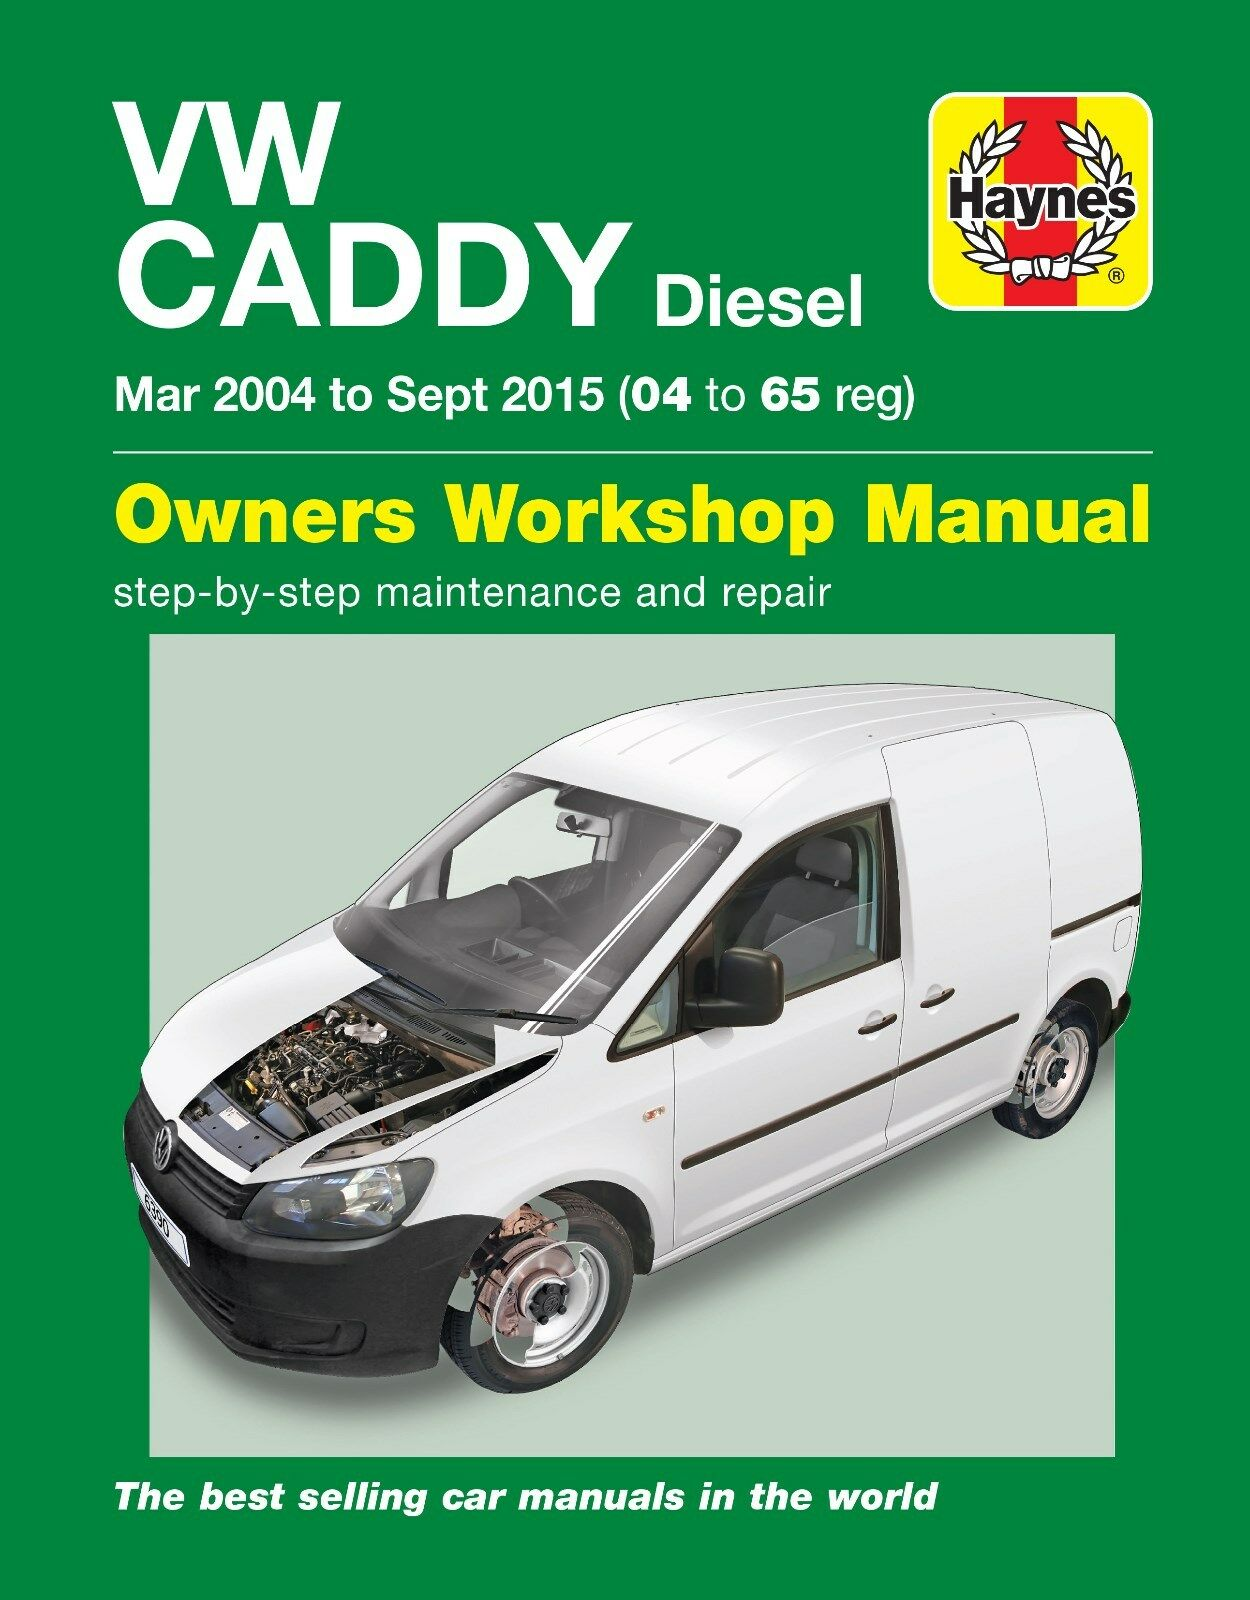 volkswagen caddy wiring diagram 3400 v6 engine coolant 6390 haynes vw diesel mar 2004 sept 2015 workshop